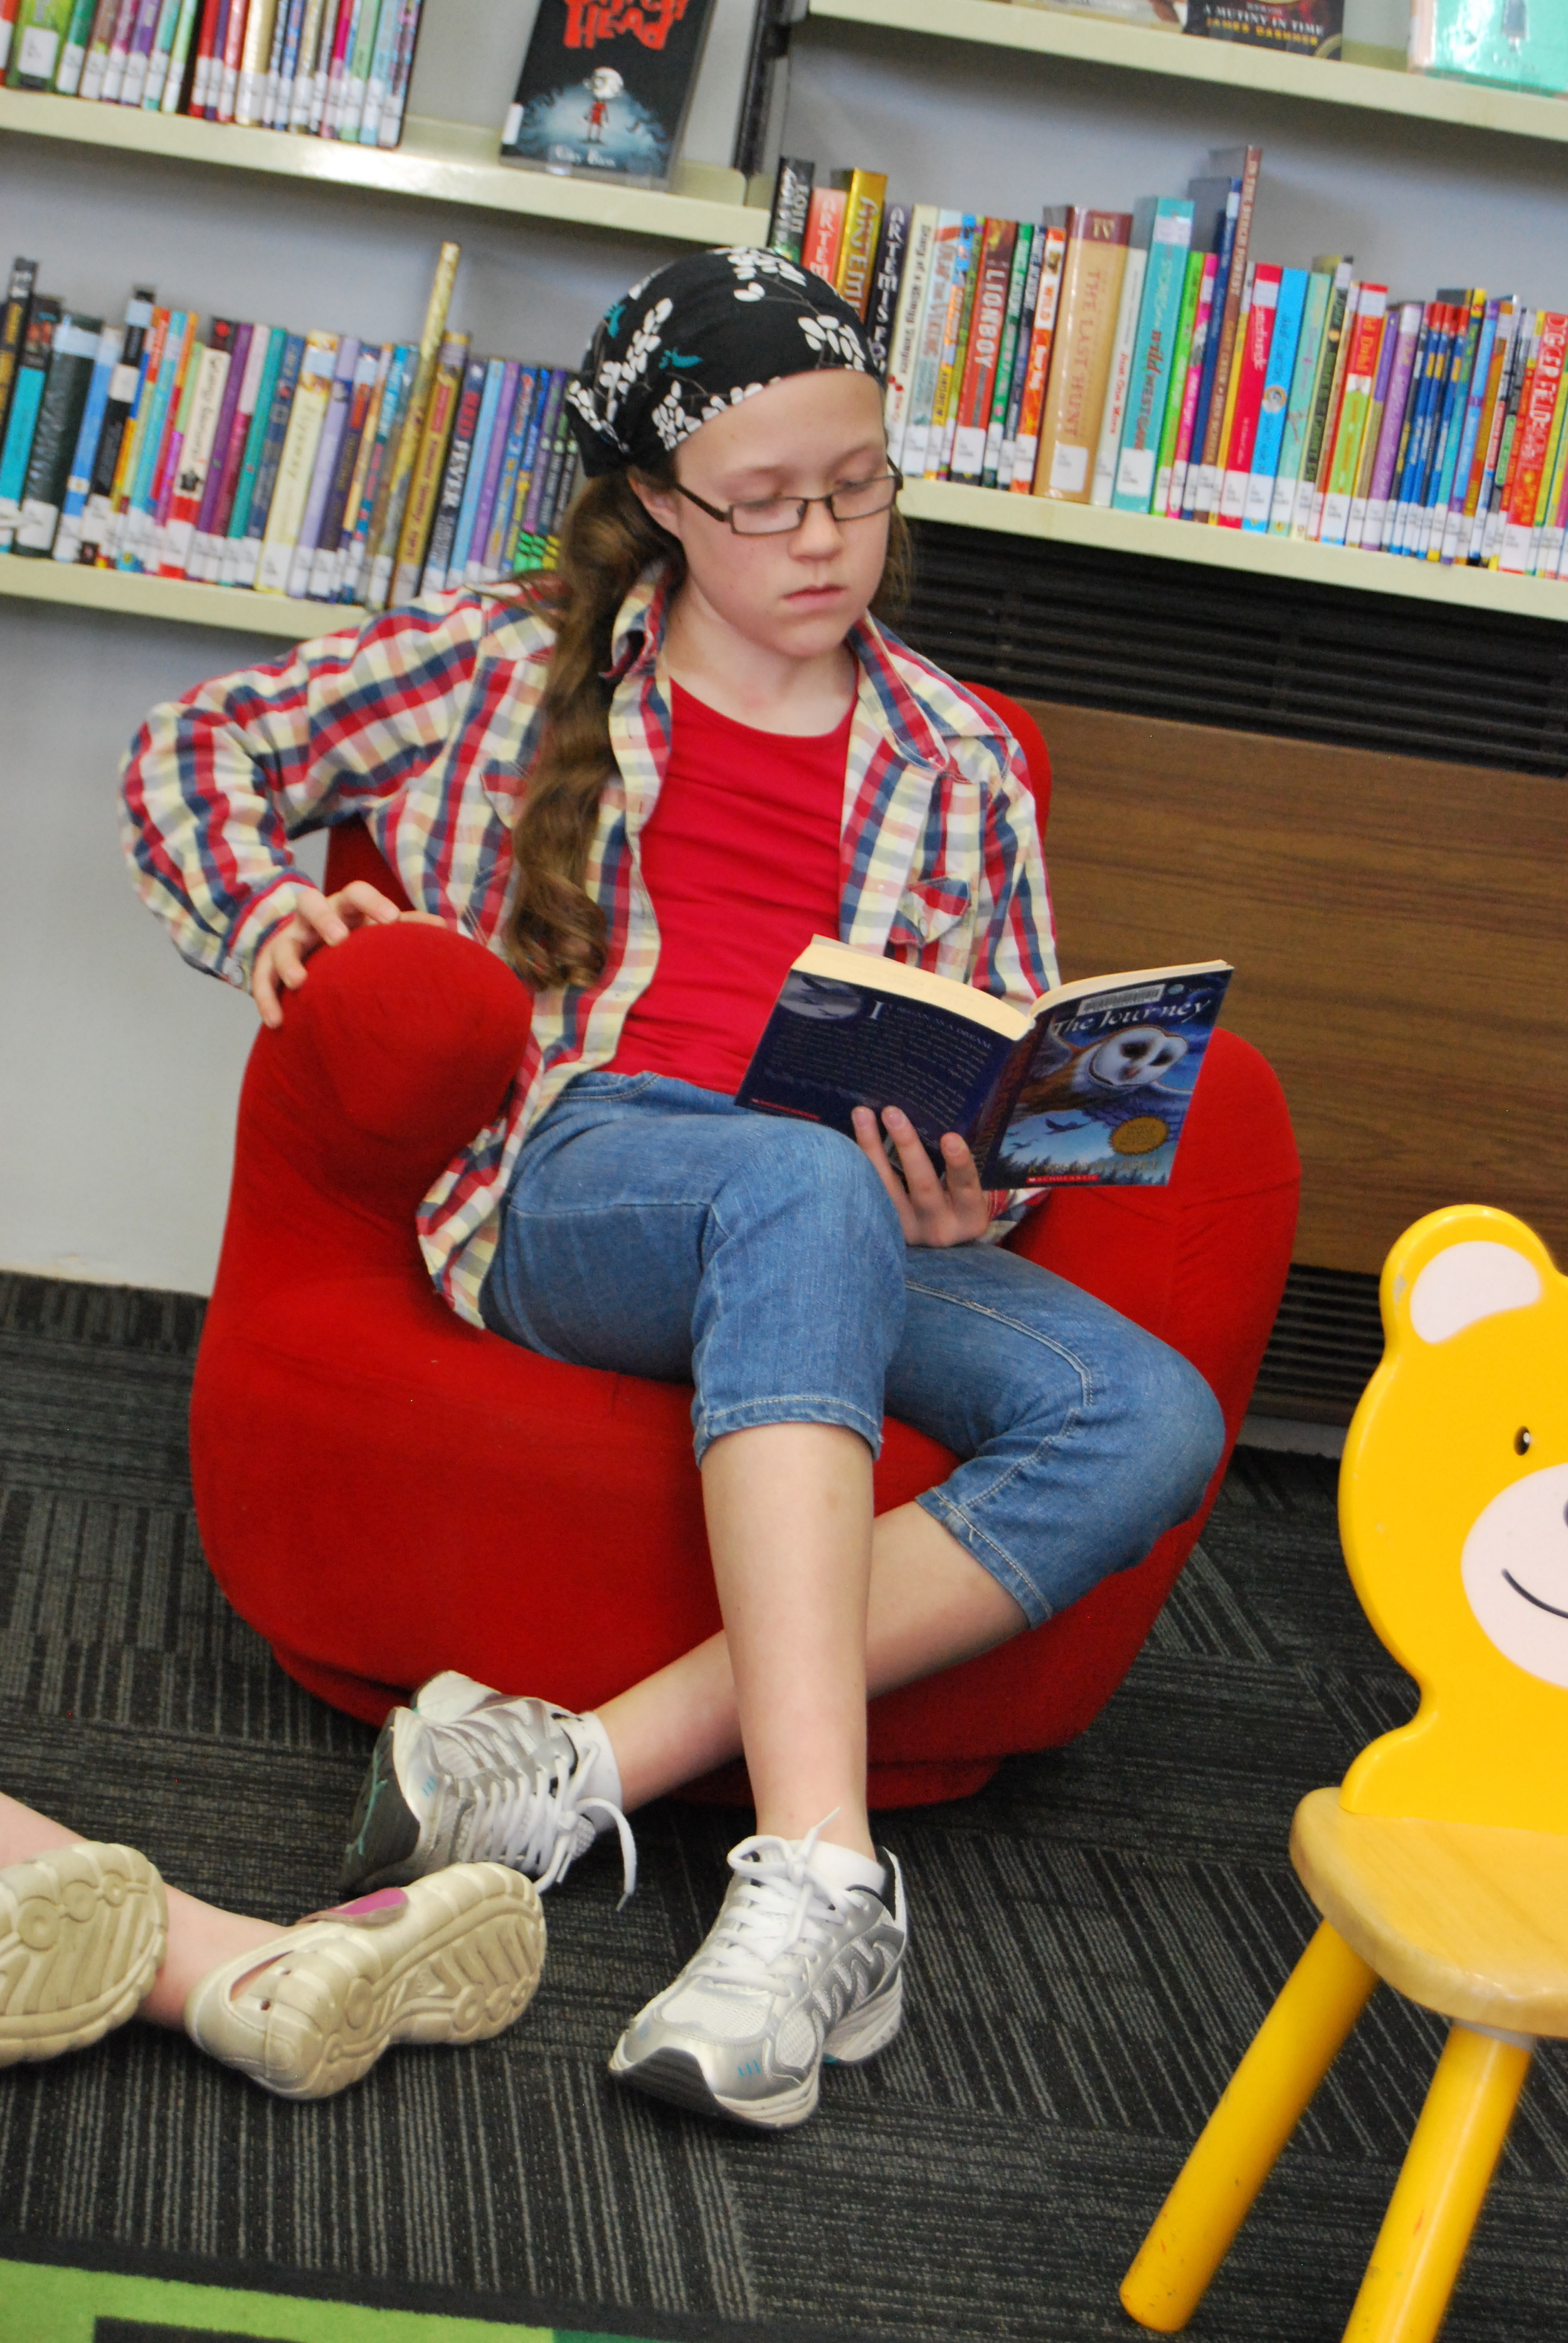 yarraville library, yarraville - Mamma Knows West